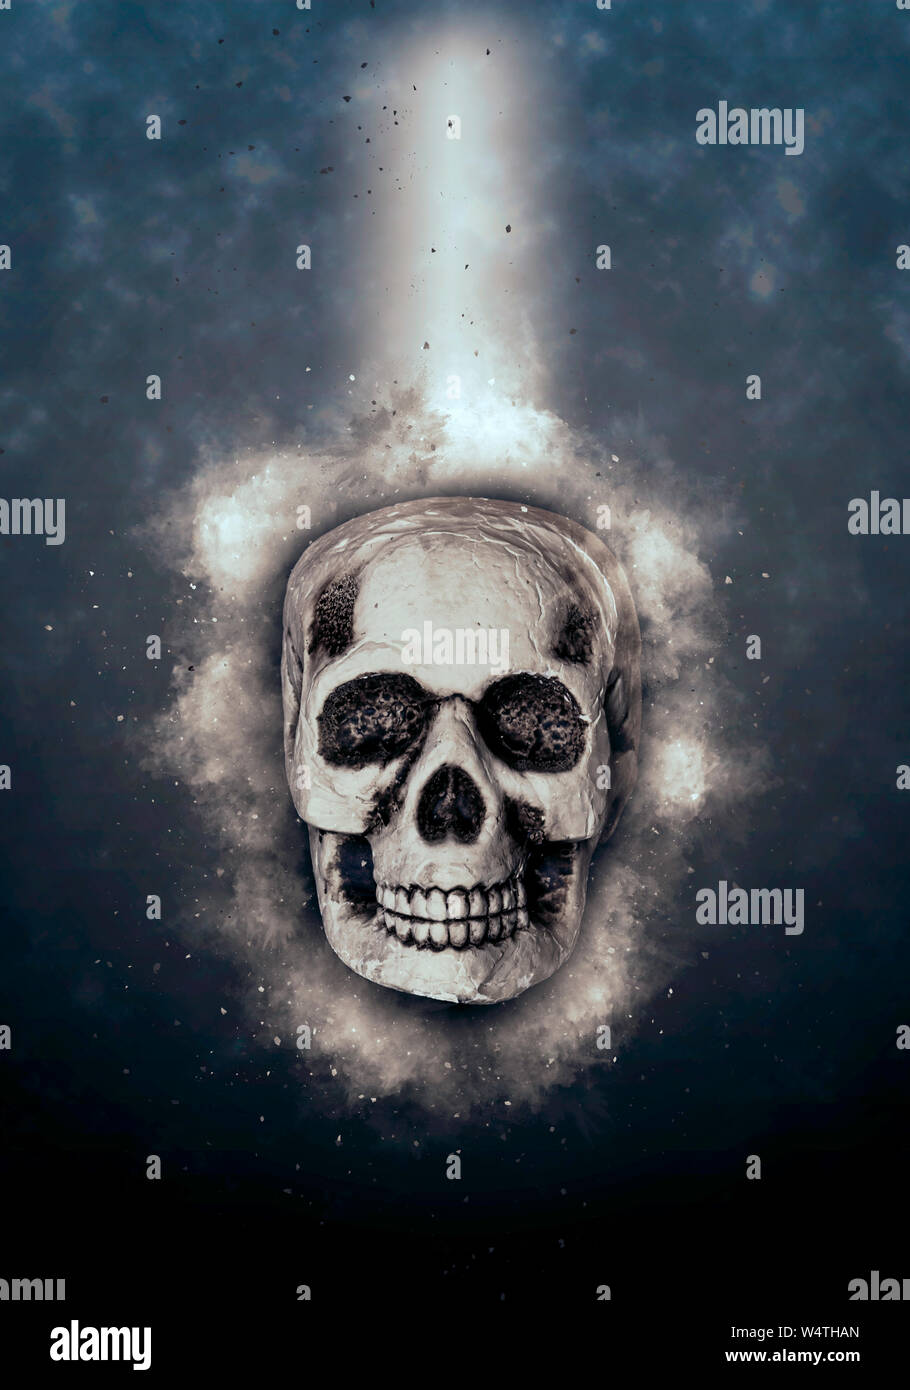 Concept image of a human skull surrounded by cosmic energy Stock Photo